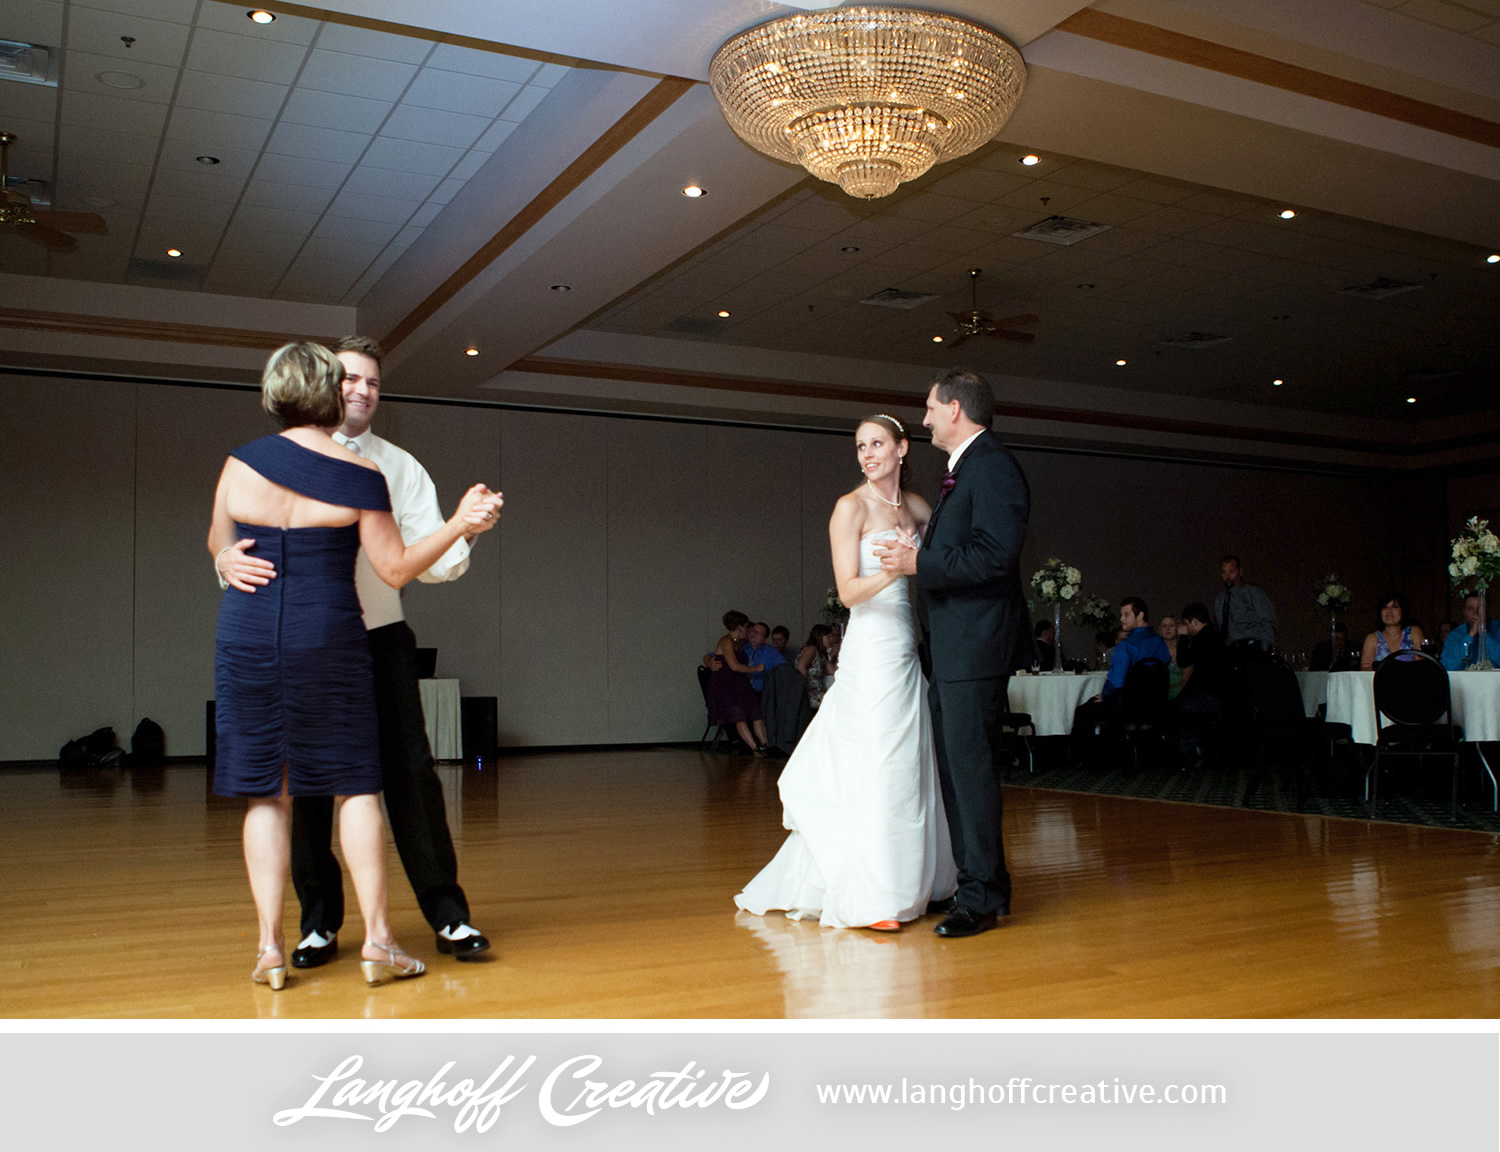 PlainfieldWedding-2013-LanghoffCreative-MattErin-26-photo.jpg